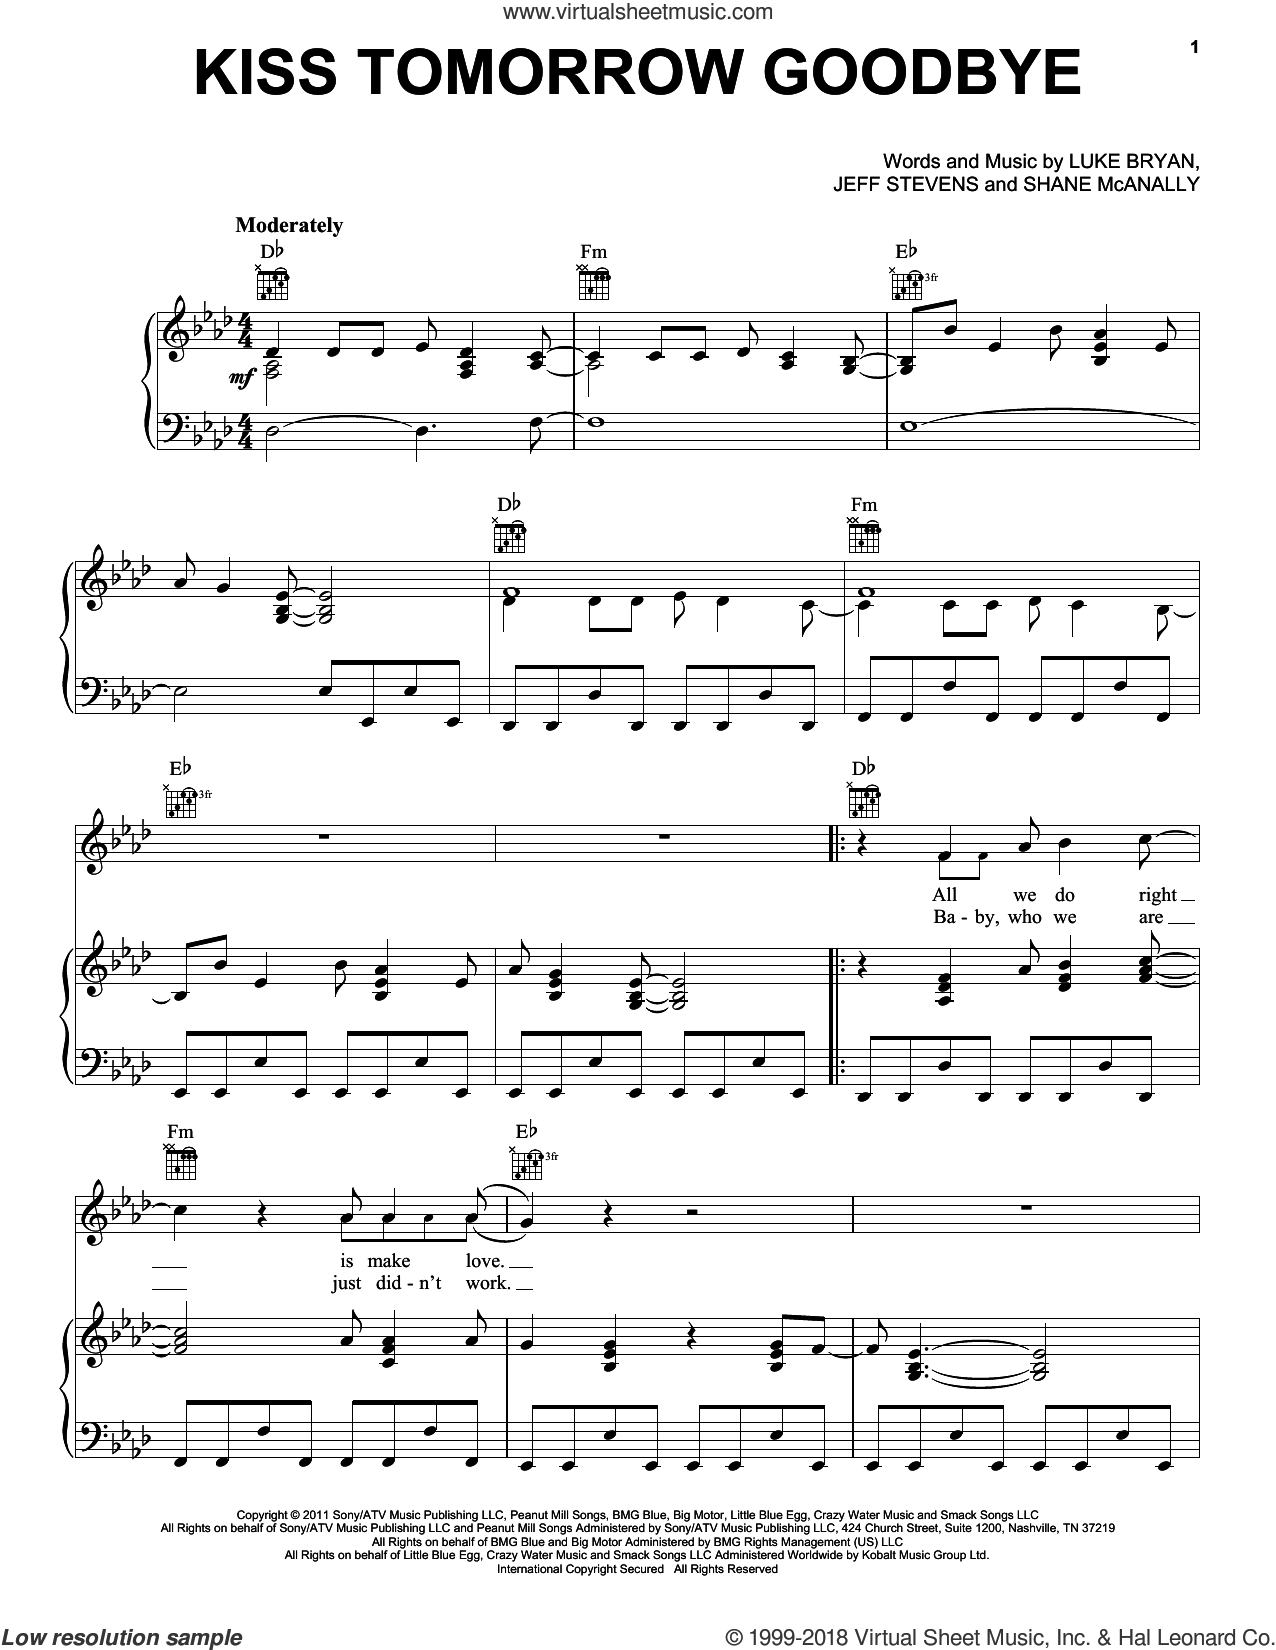 Kiss Tomorrow Goodbye sheet music for voice, piano or guitar by Luke Bryan, Jeff Stevens and Shane McAnally, intermediate skill level